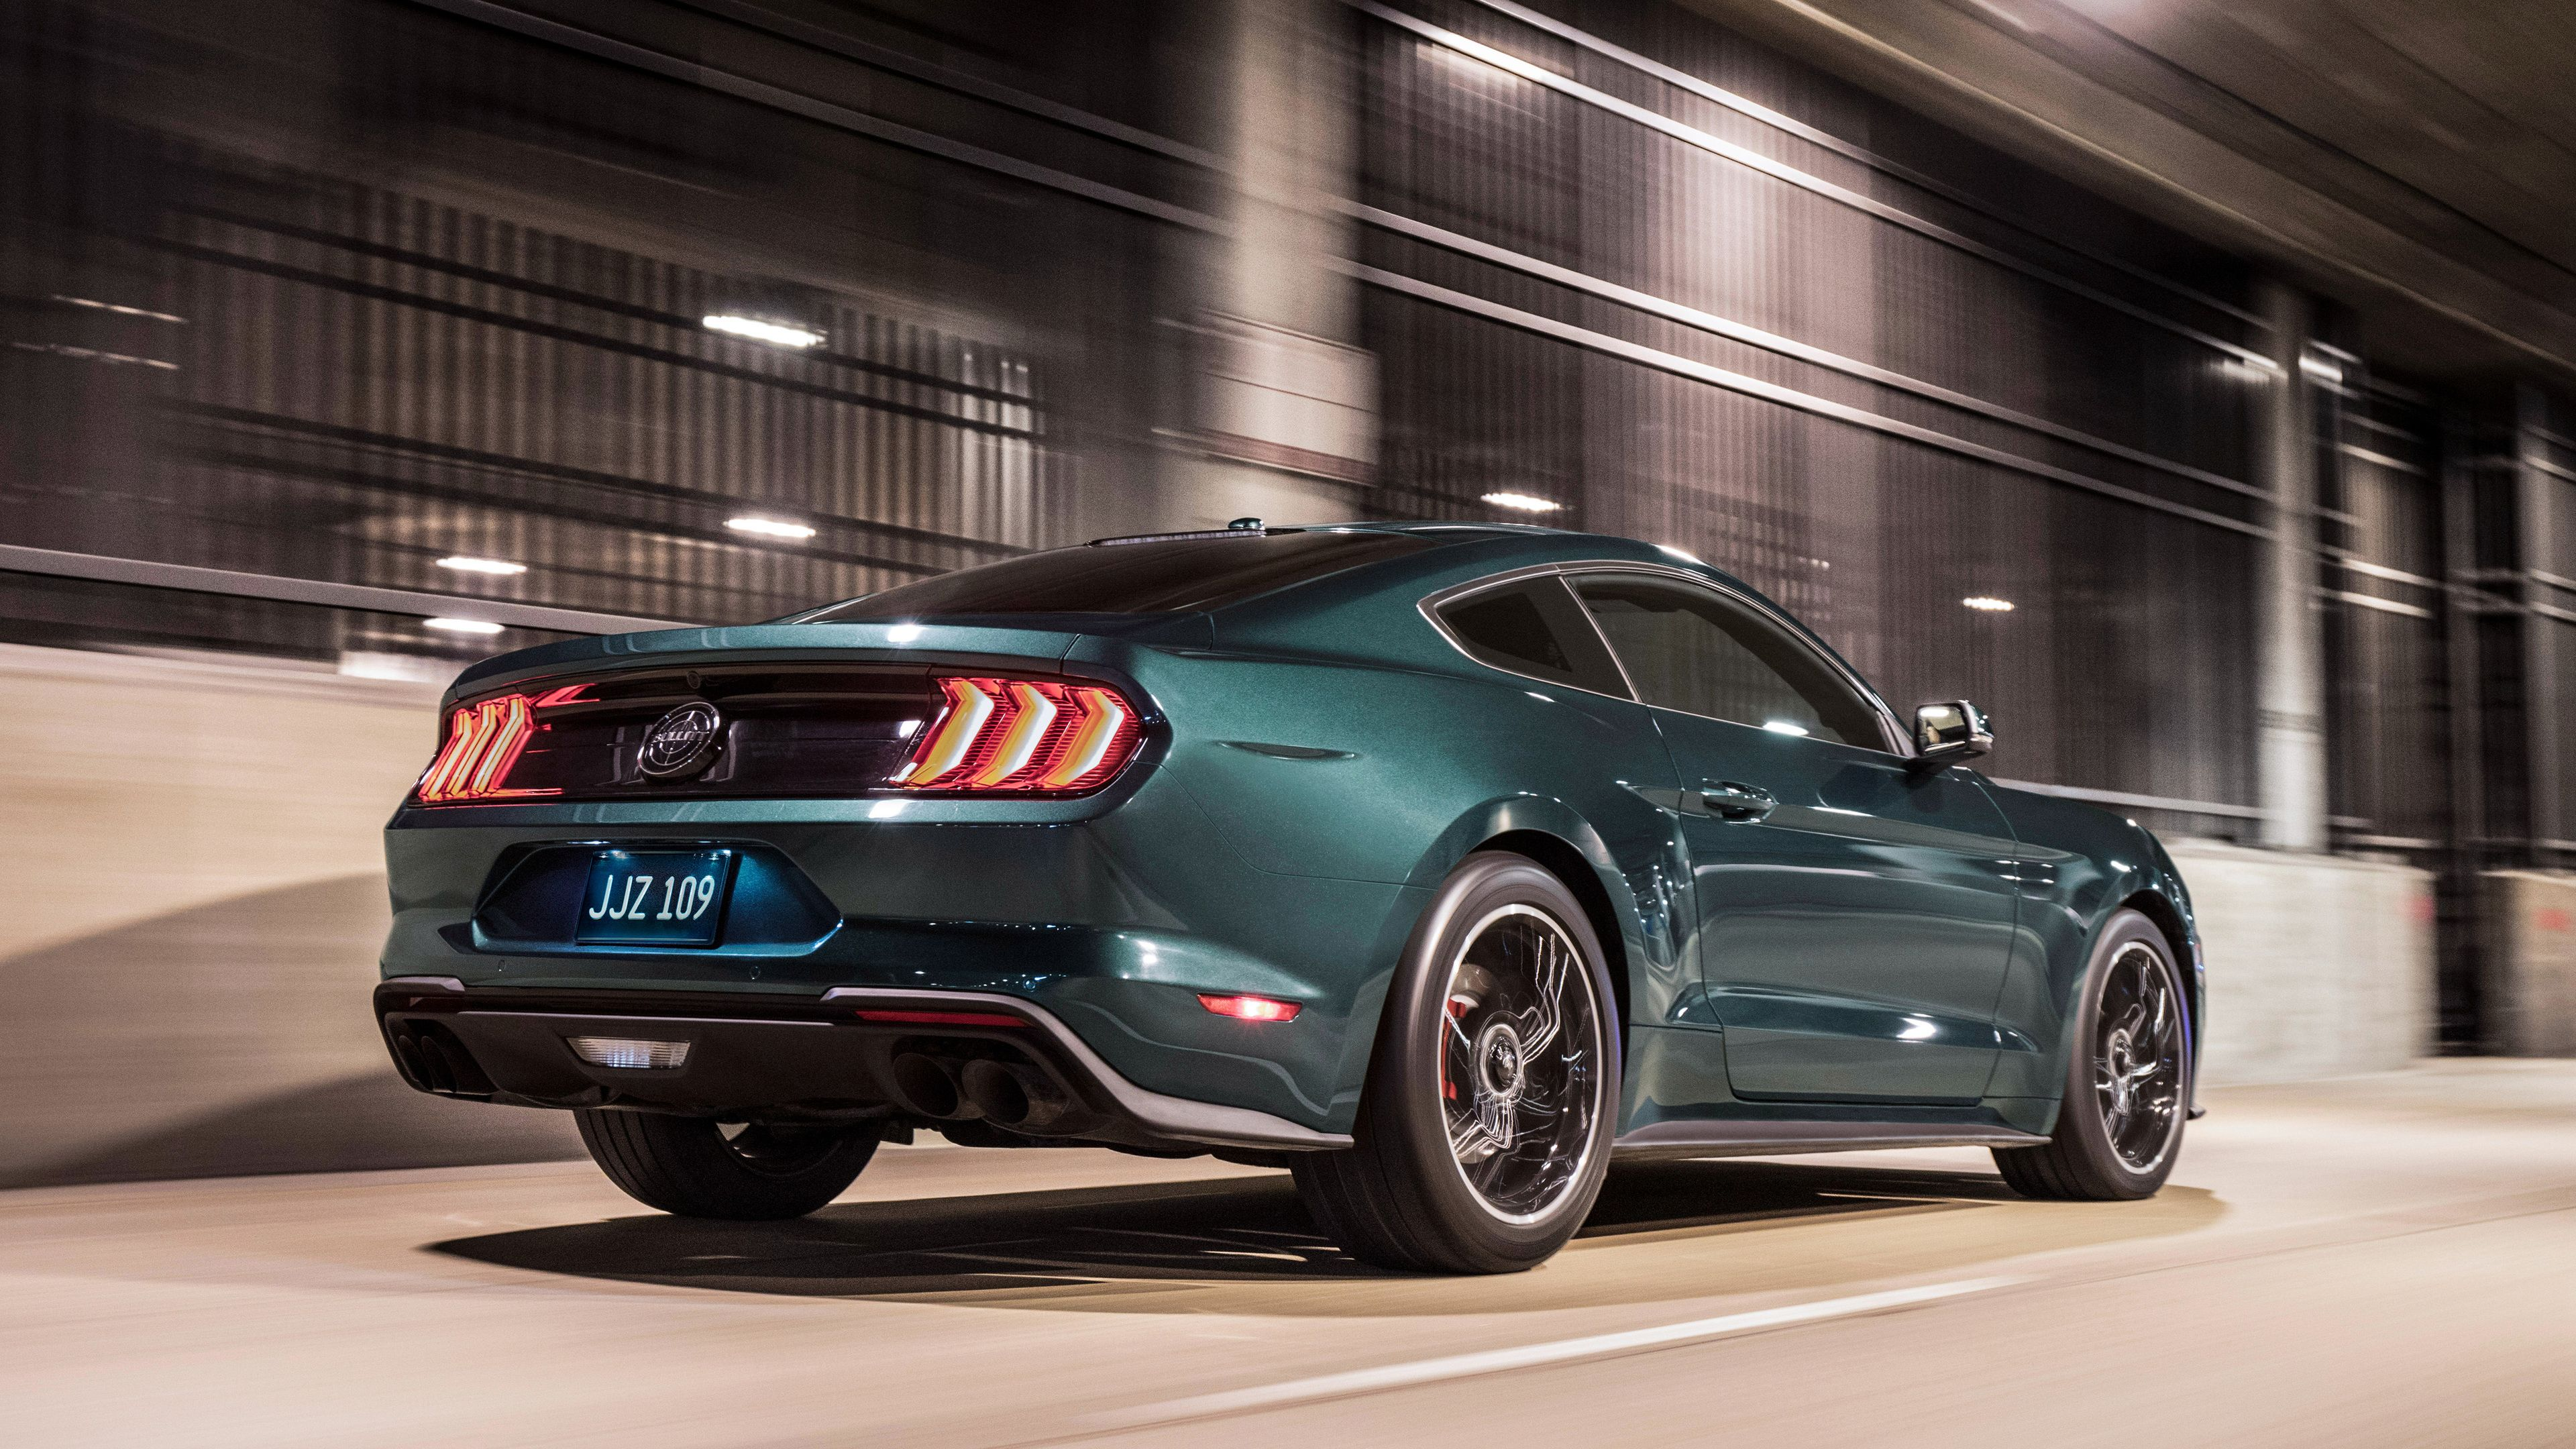 2019 Ford Mustang Sports Car The Bullitt Is Back >> 2019 Ford Mustang Bullitt Rear 4k Mustang Wallpapers Hd Wallpapers